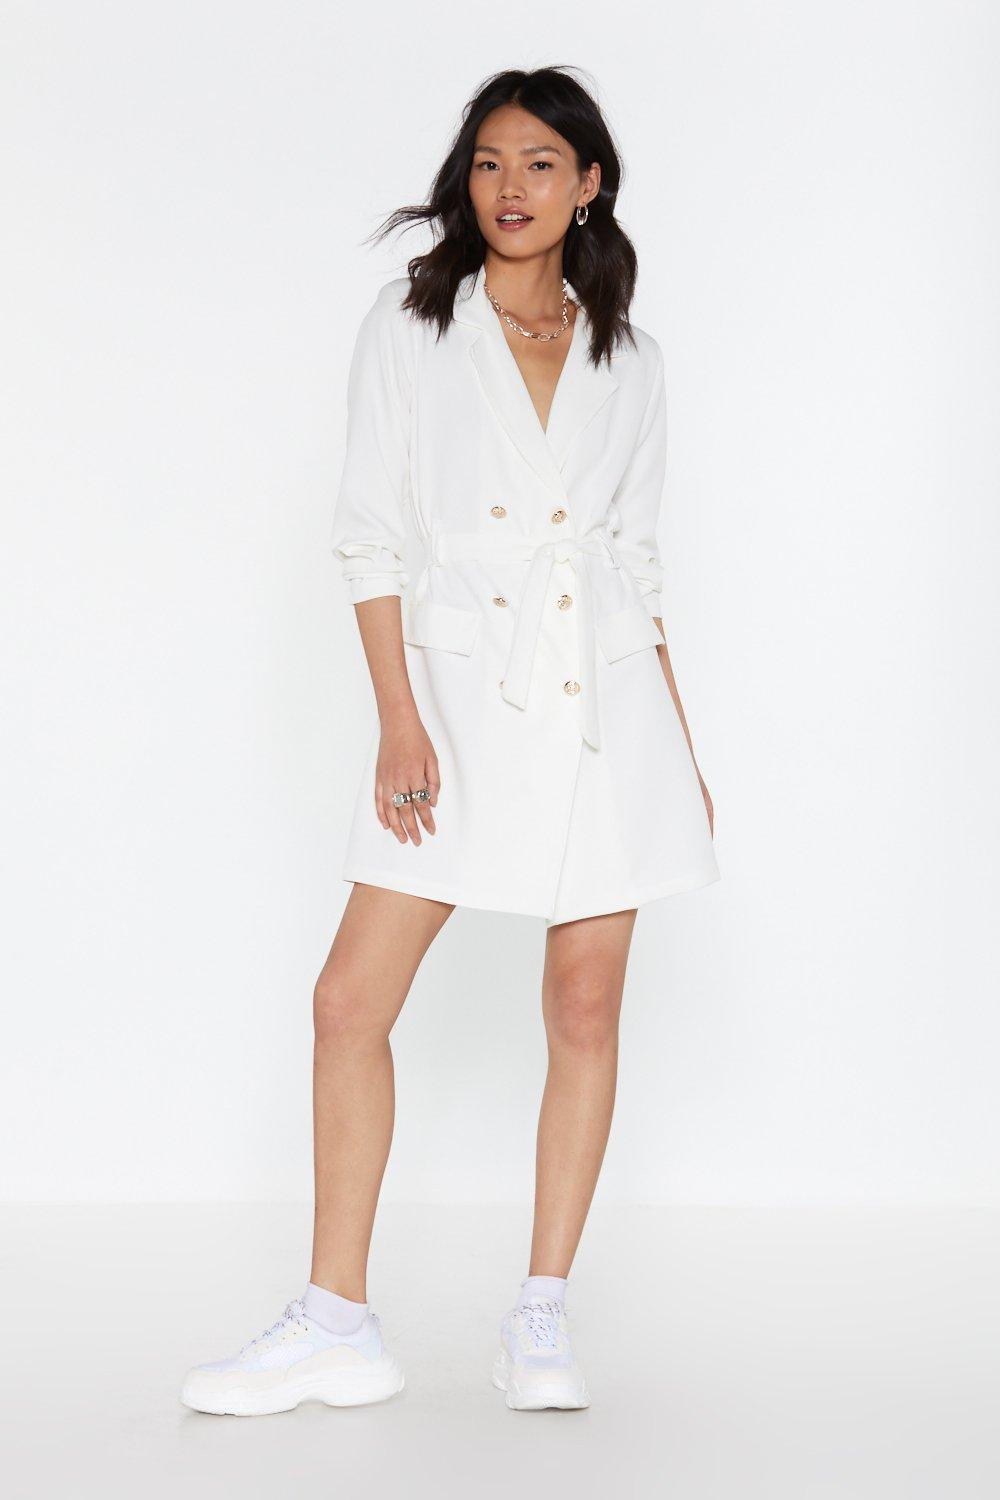 b9065555617b0 Suits You Double Breasted Blazer Dress | Shop Clothes at Nasty Gal!